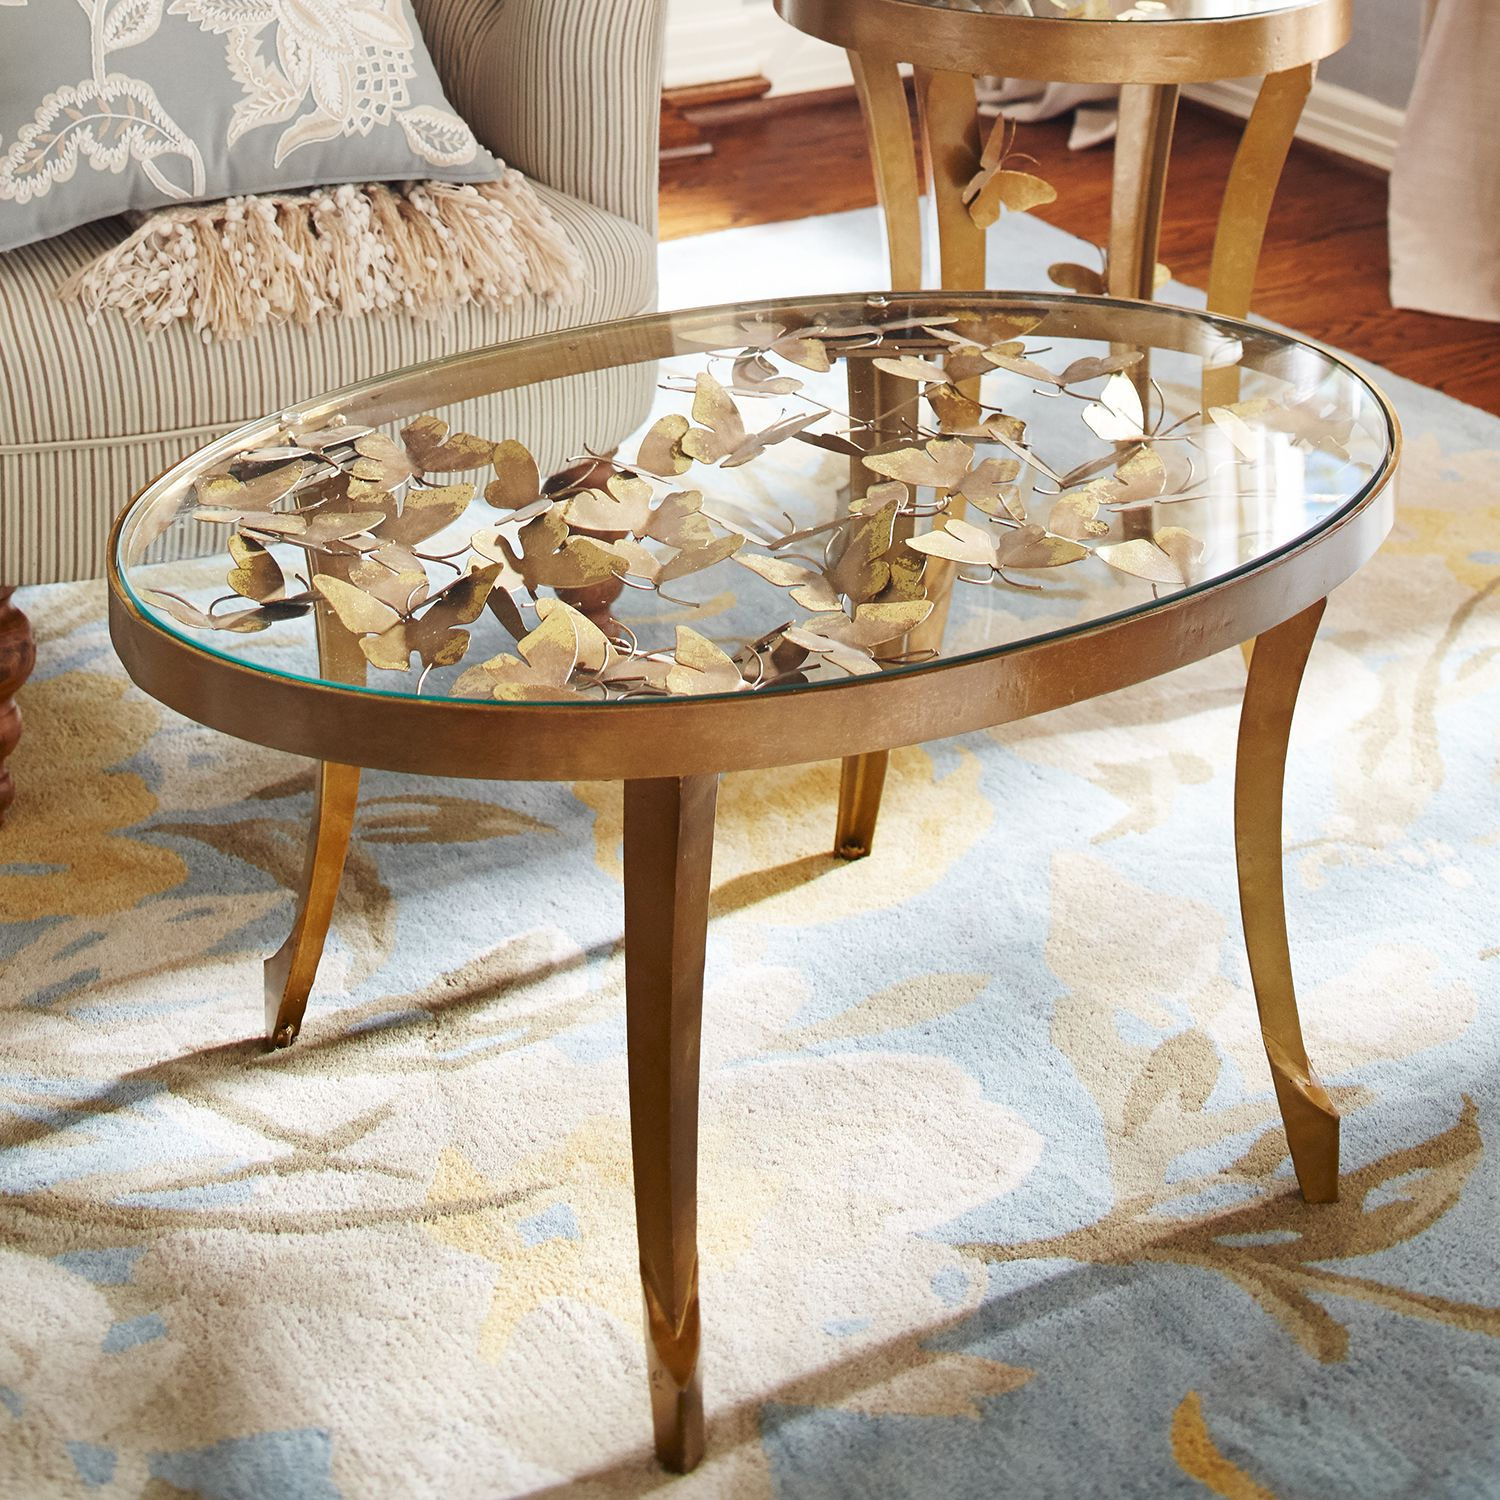 golden butterfly coffee table pier imports glass accent ethan allen chippendale dining chairs drawer chest end tablecloth coral home accents inch designer lamps small gray side